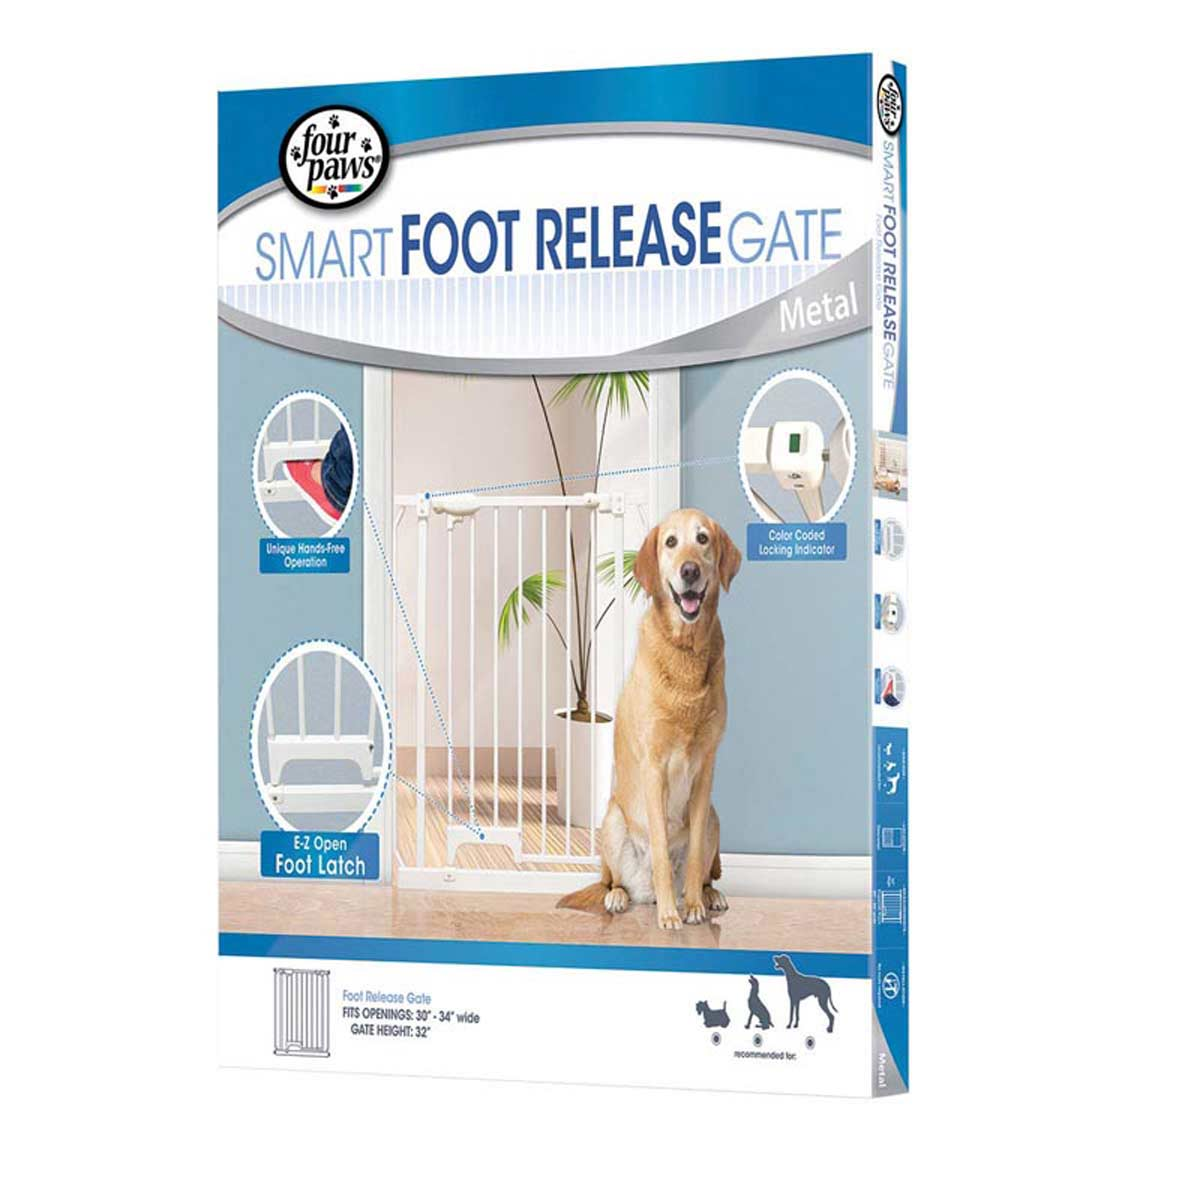 Four Paws Smart Foot Release Metal Dog Gate - Expandable 30-34 inches wide by 32 inches tall